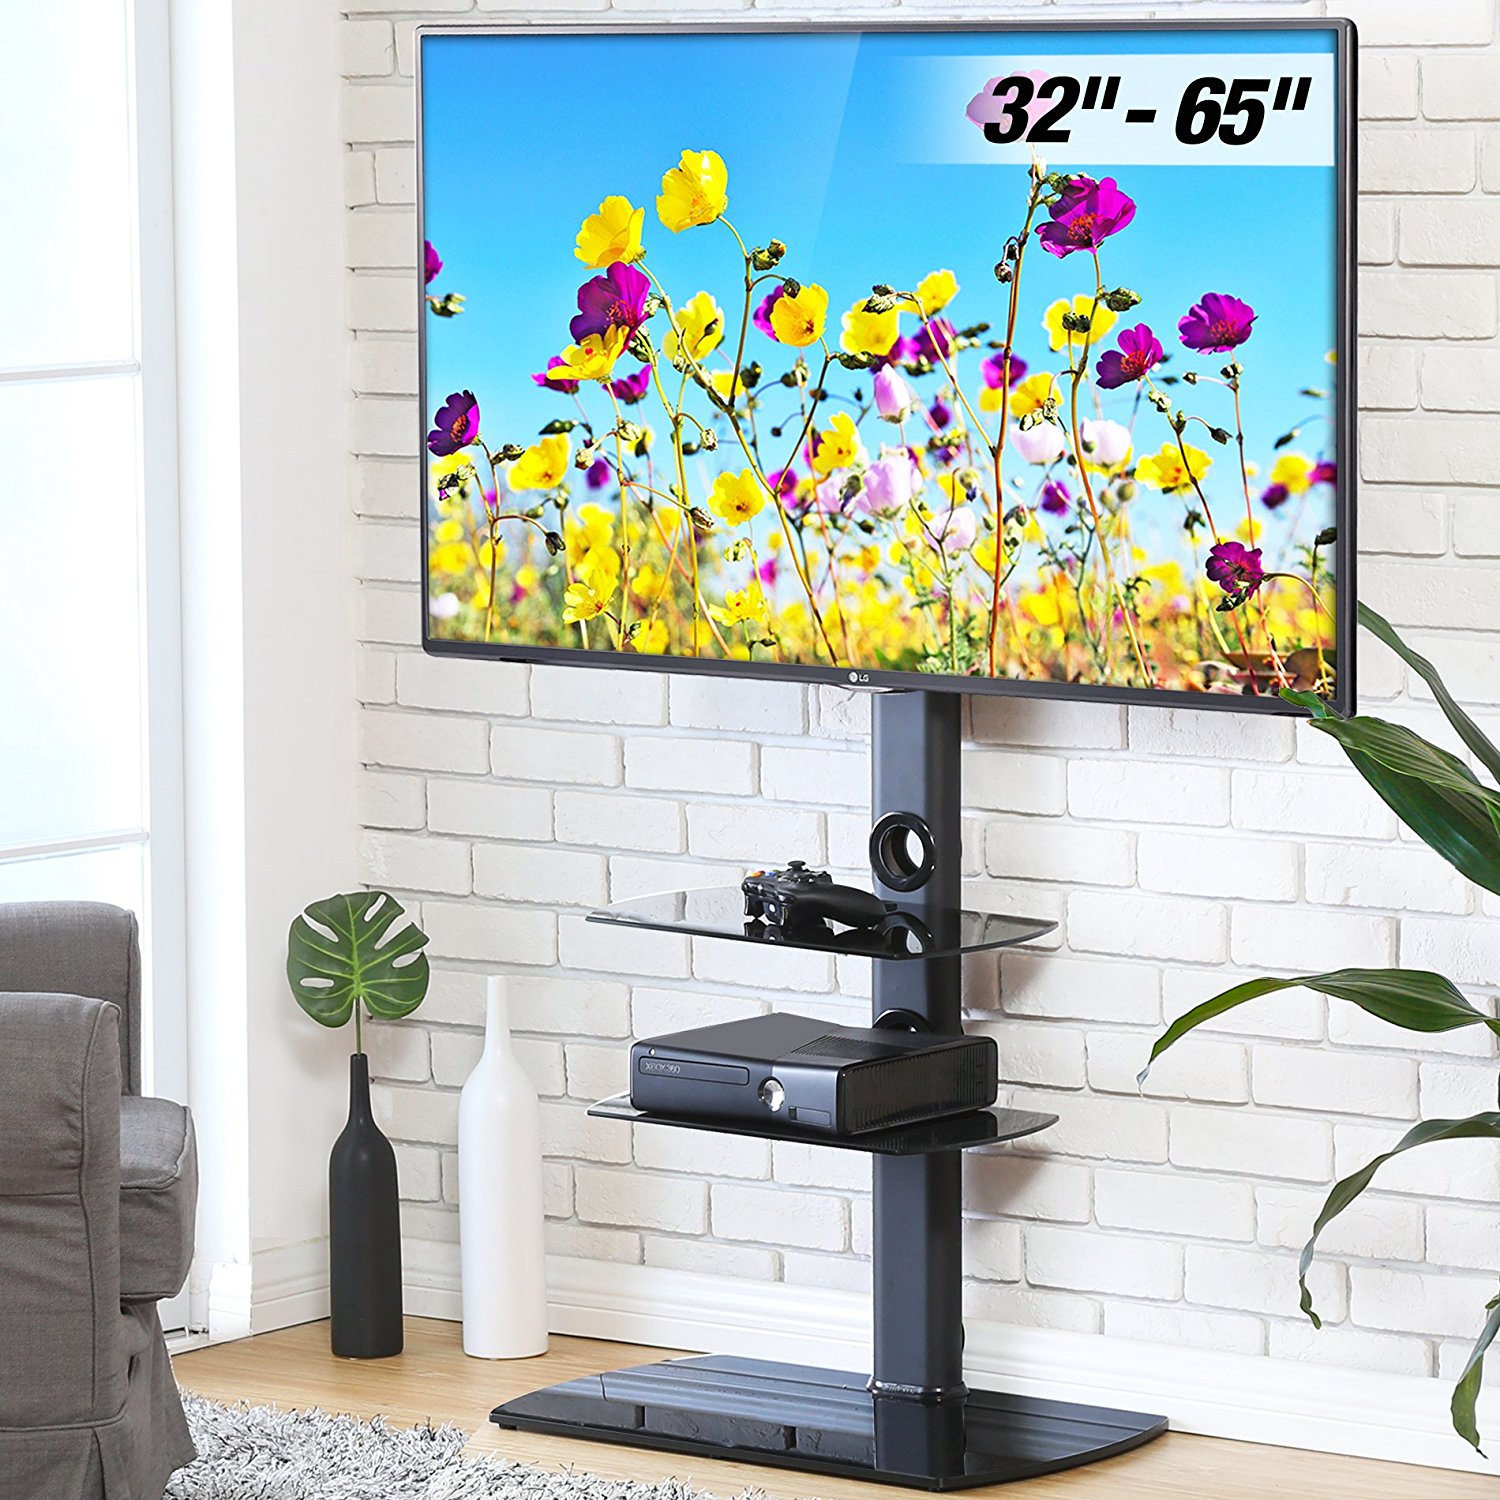 FITUEYES Floor TV Stand with Swivel Mount for 32 to 65 inch TVs TT306501GB